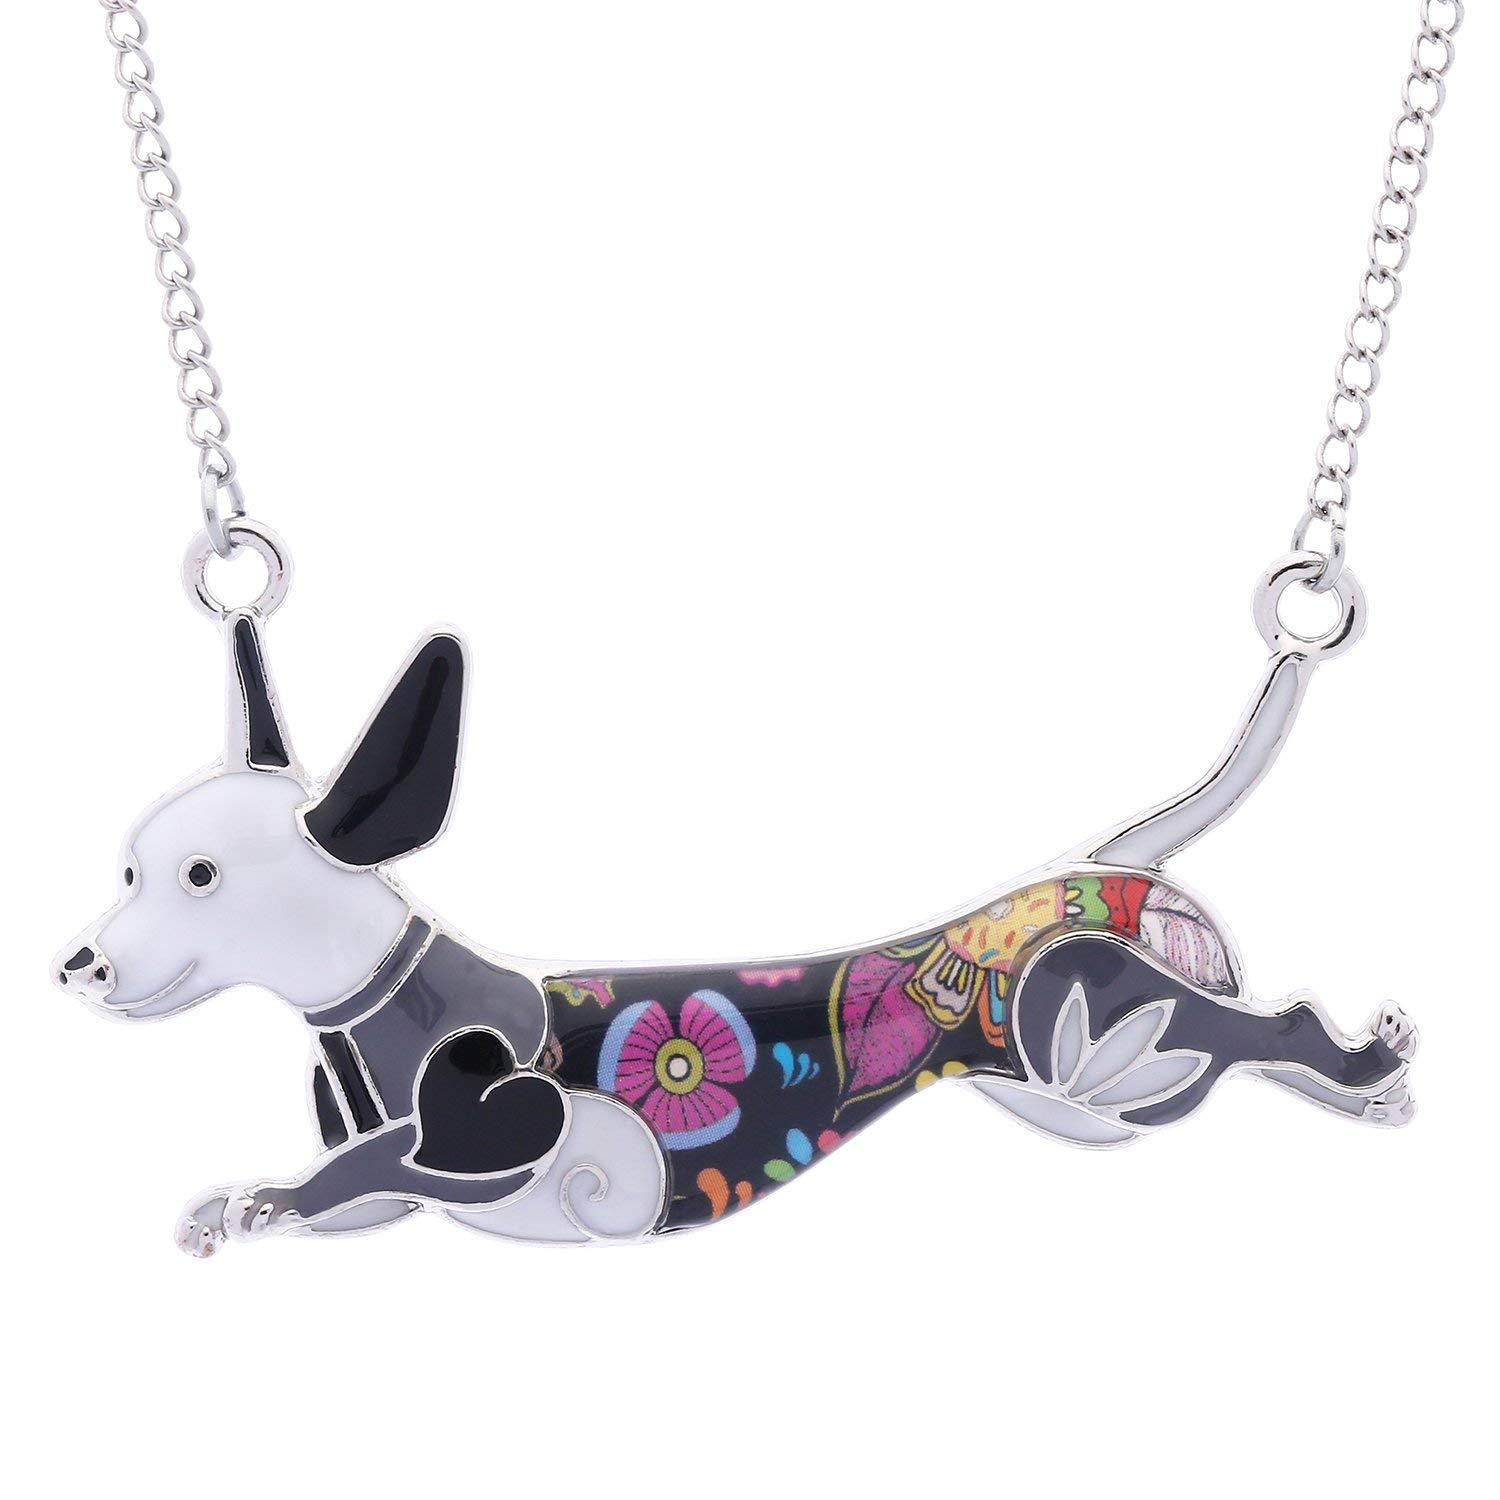 Wholesale Unique Dachshund Necklace Pendant For Women Girls Cute Dog Charm Jewelry Lover Birthday Gift Chain Mens From Zhengsu